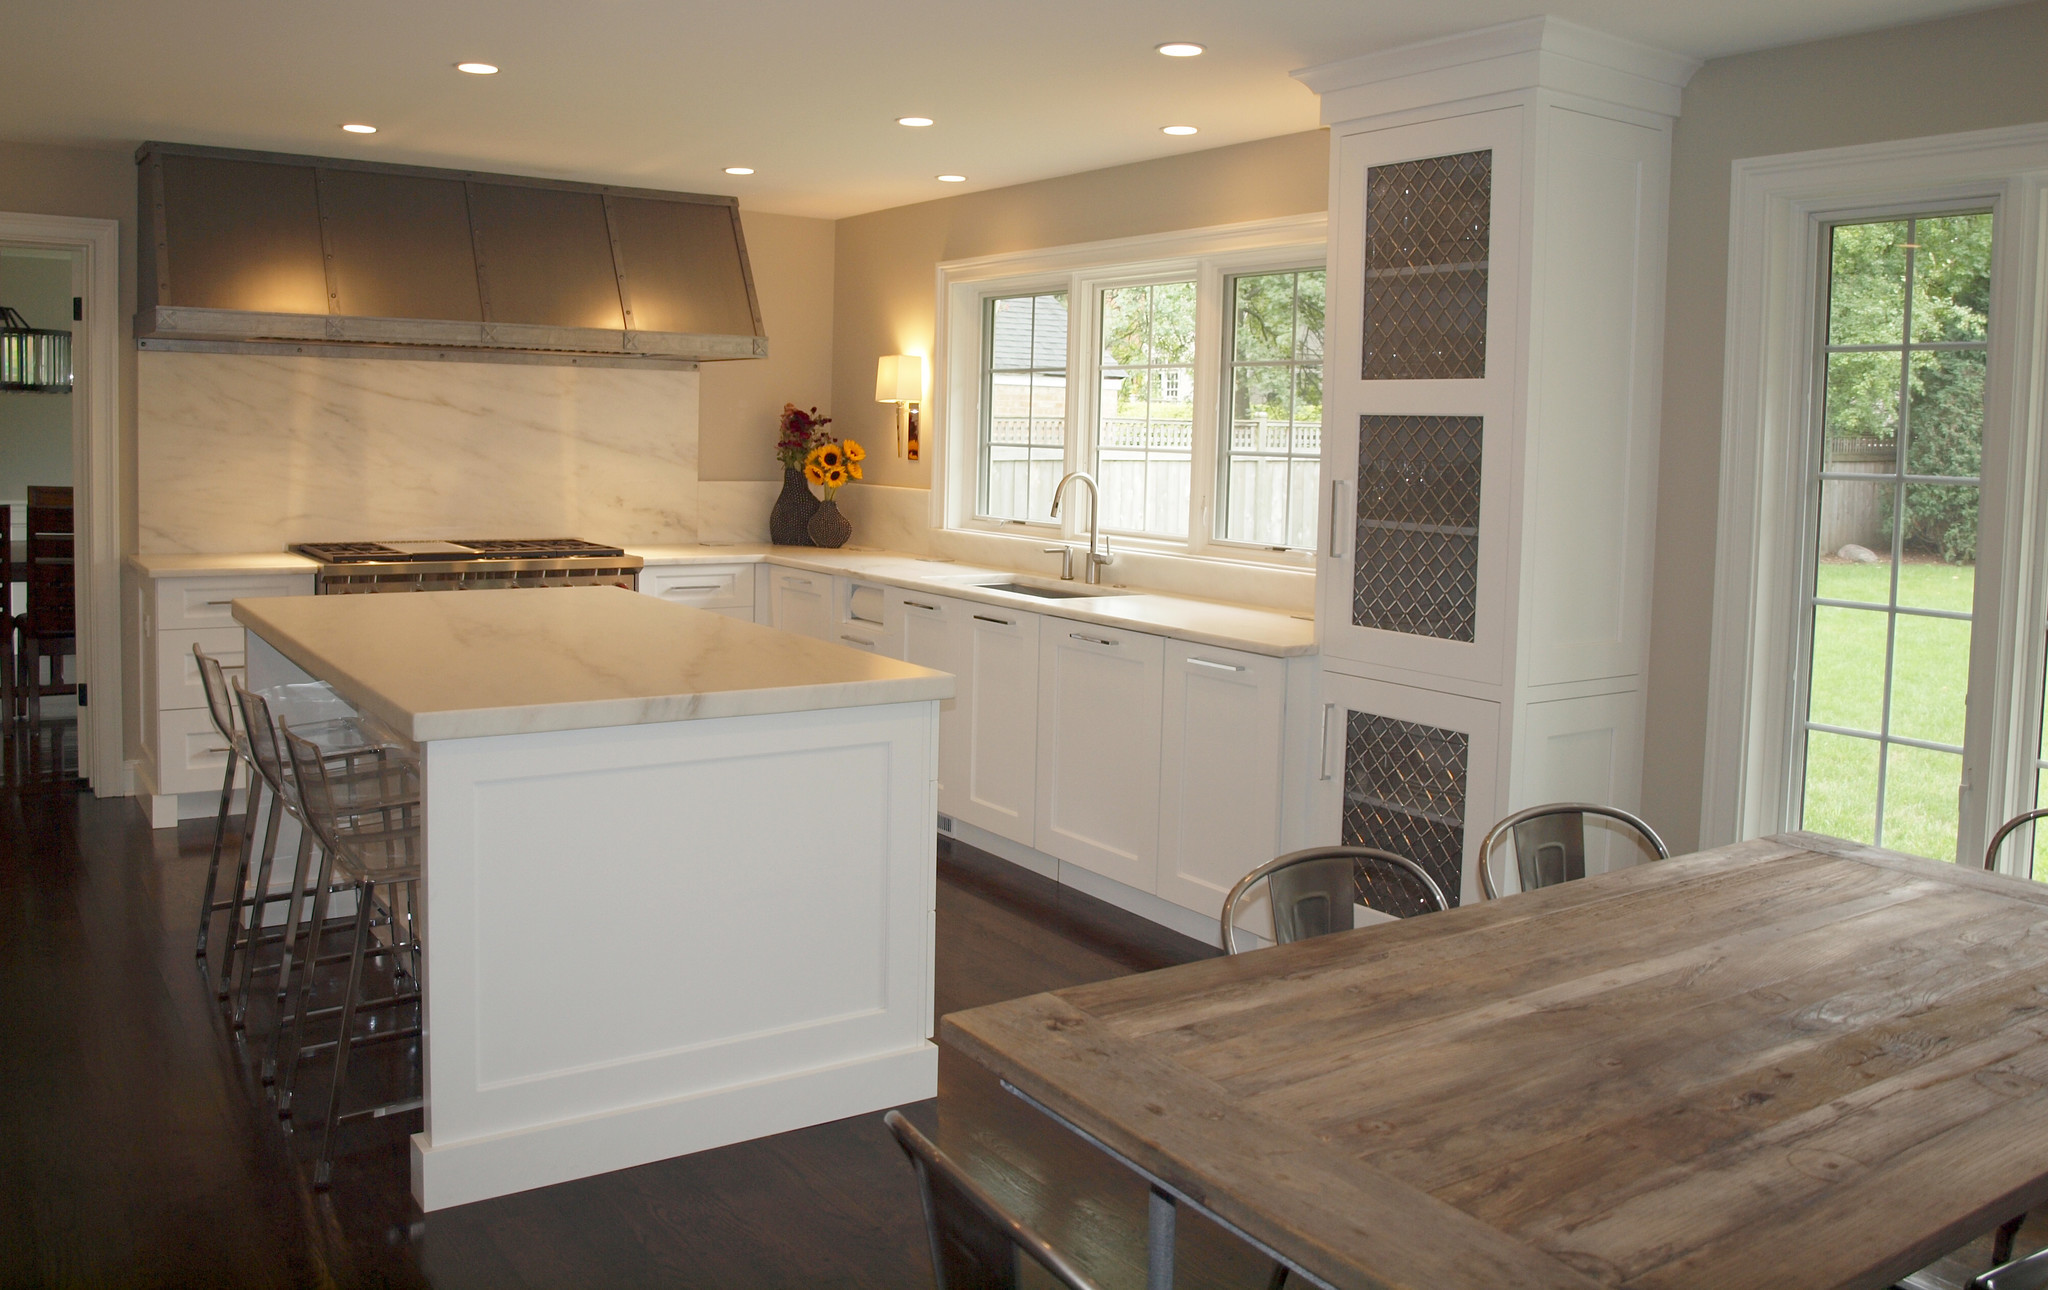 Hinsdale kitchen remodel wins local design award the for Local kitchen remodeling